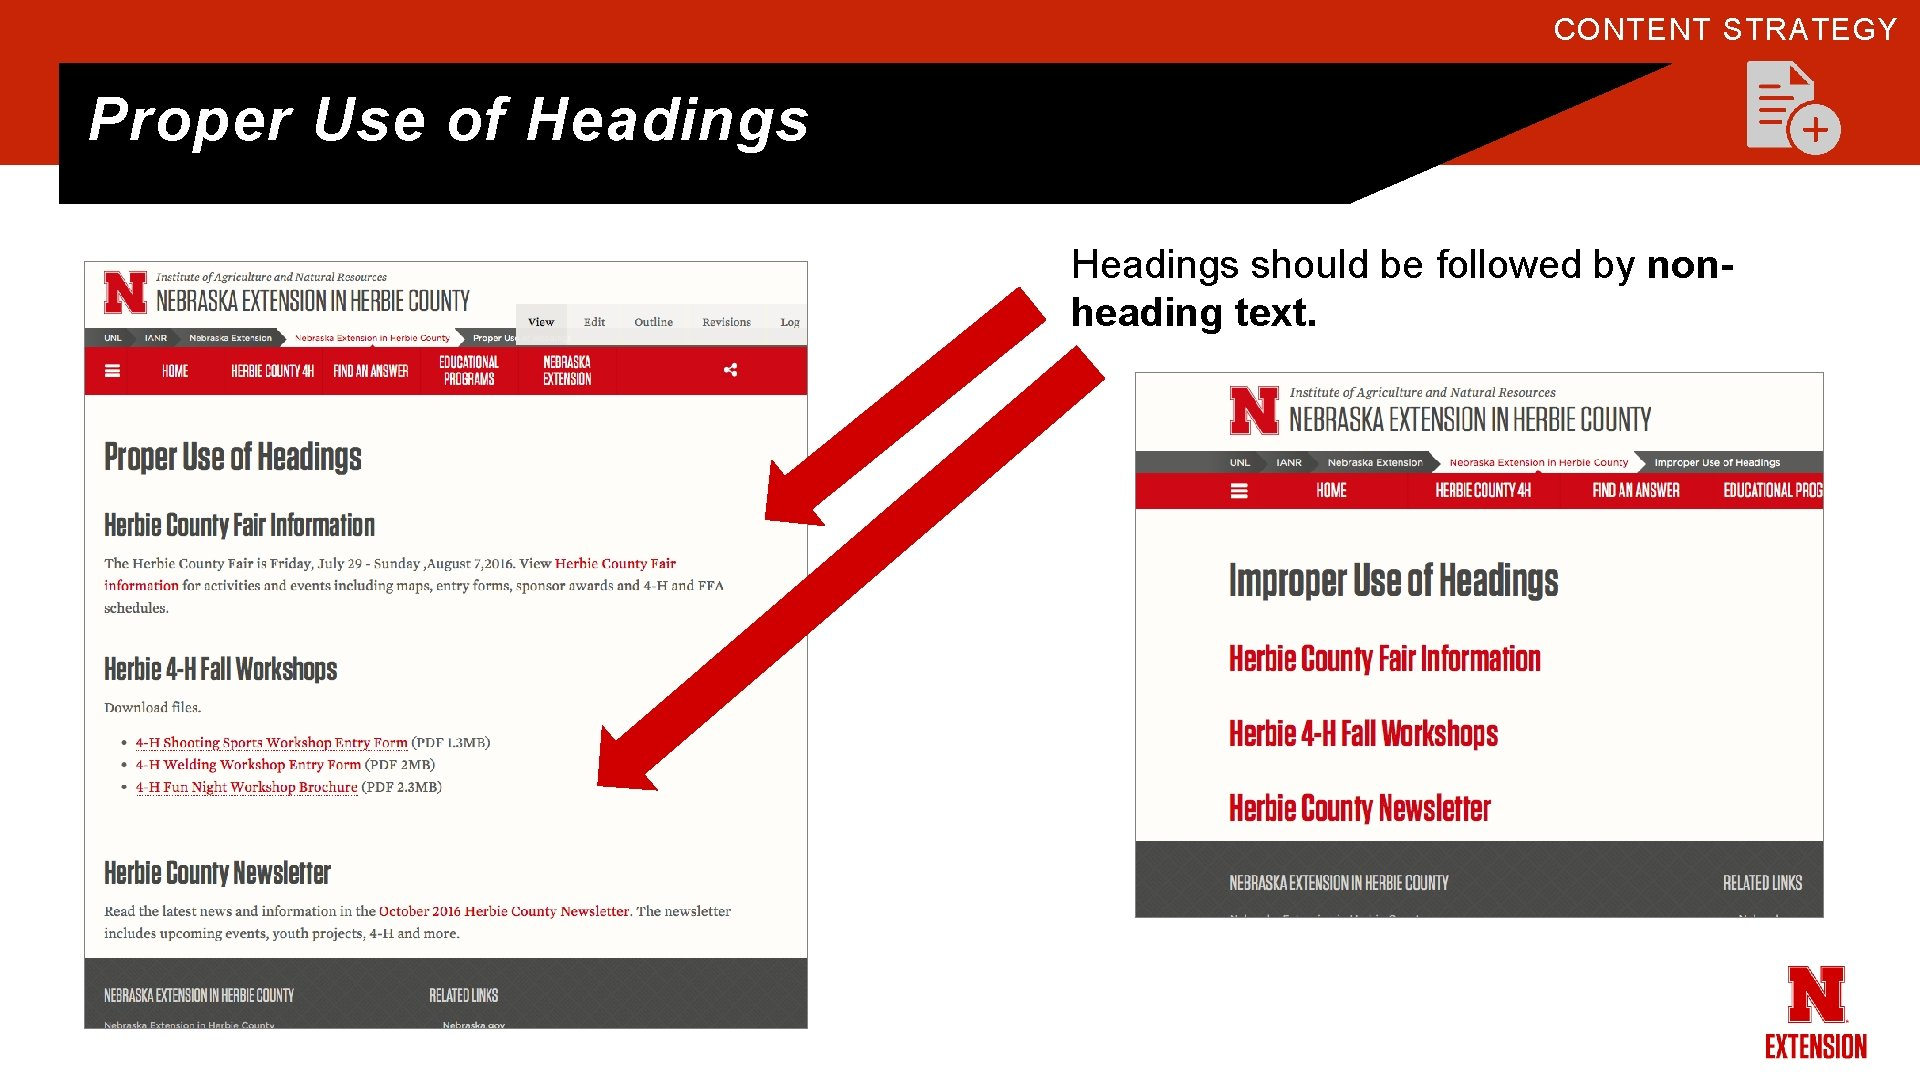 CONTENT STRATEGY Proper Use of Headings should be followed by nonheading text.